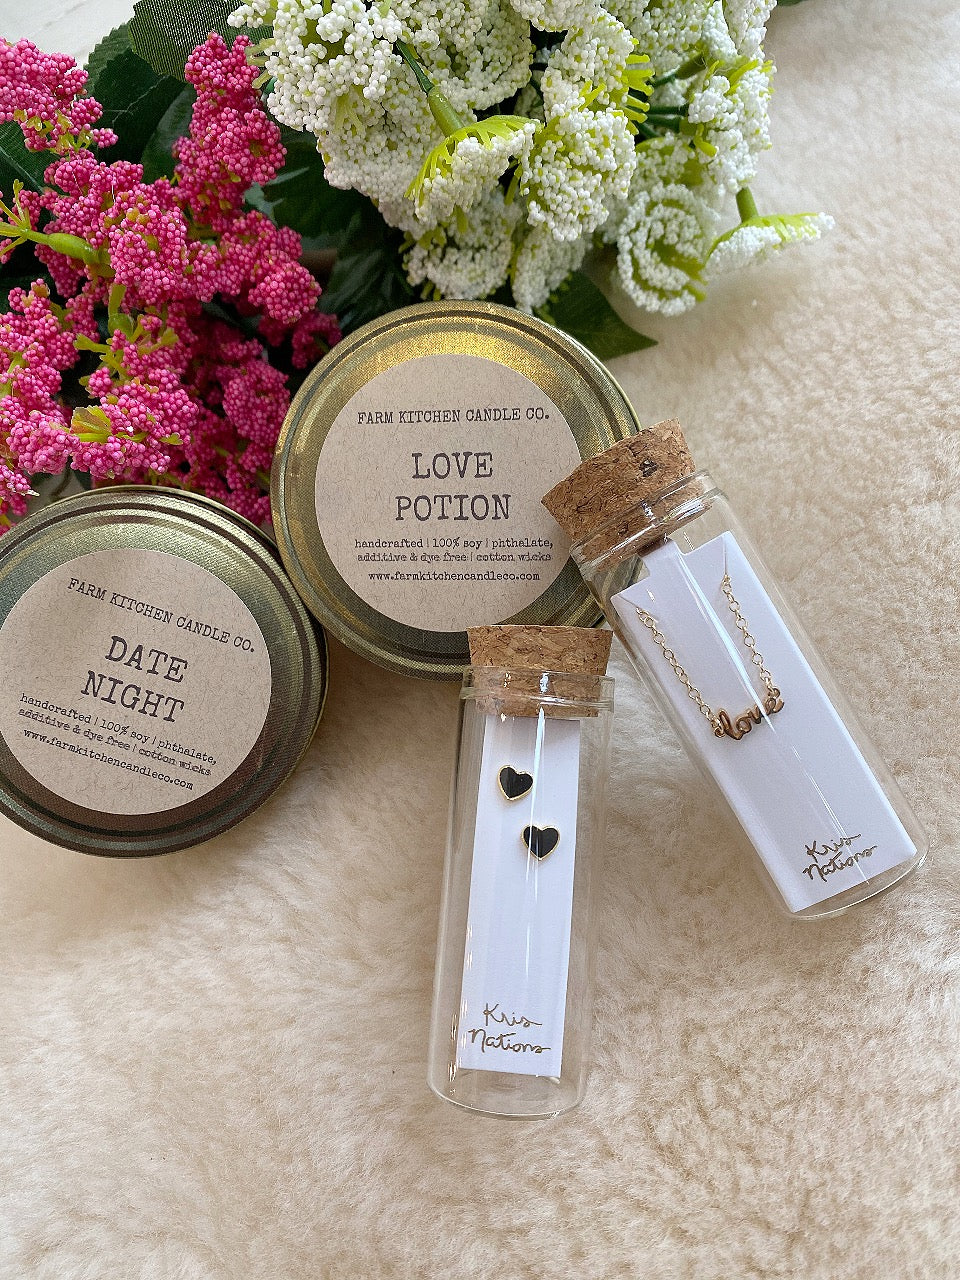 FARM KITCHEN CANDLE CO. - LOVE POTION MINI SOY CANDLE